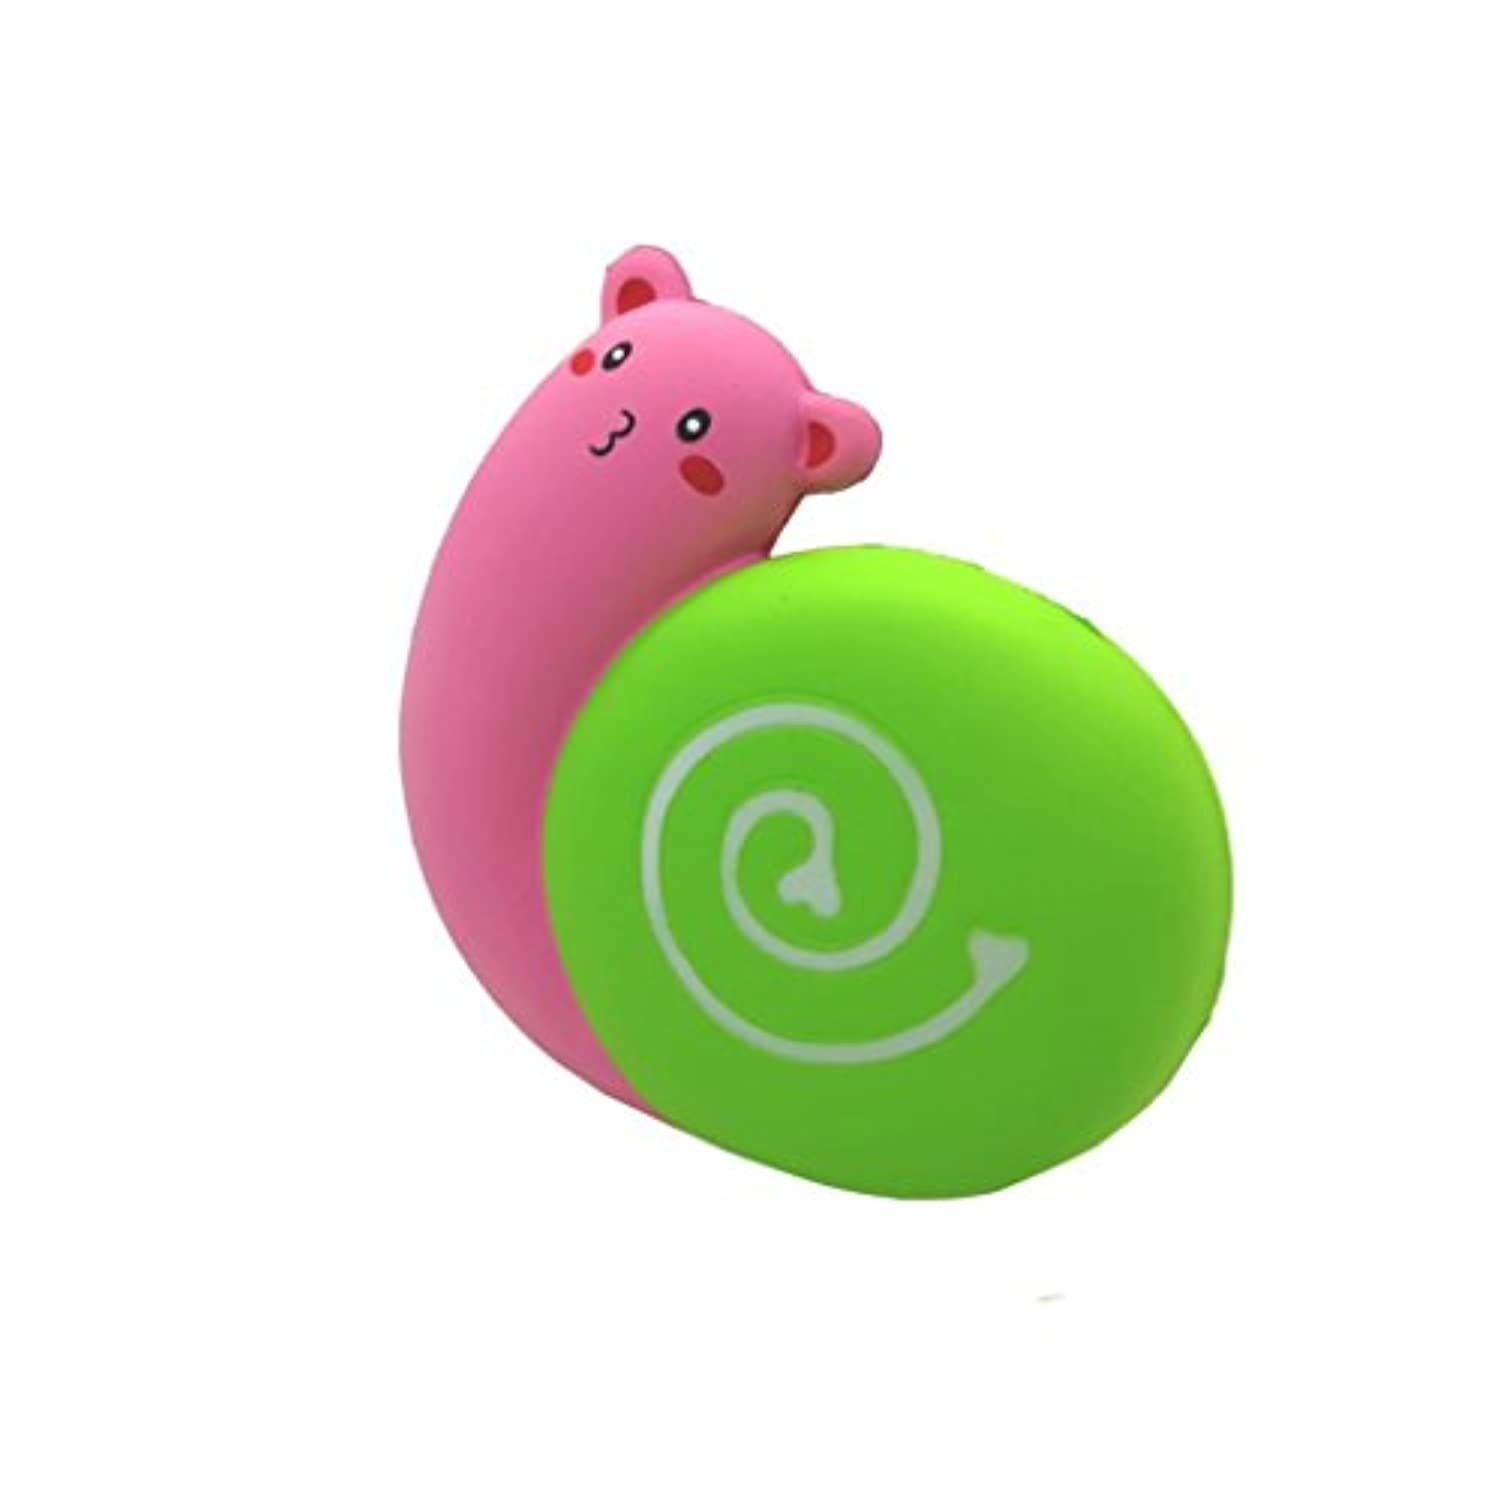 cinhent Squishyジャンボかわいい絵文字Love Snail Slow RisingクリームSqueeze香りつきCure Stress Reliefおもちゃギフト3色オプション 12x4x11.5cm ピンク CHINA-8808